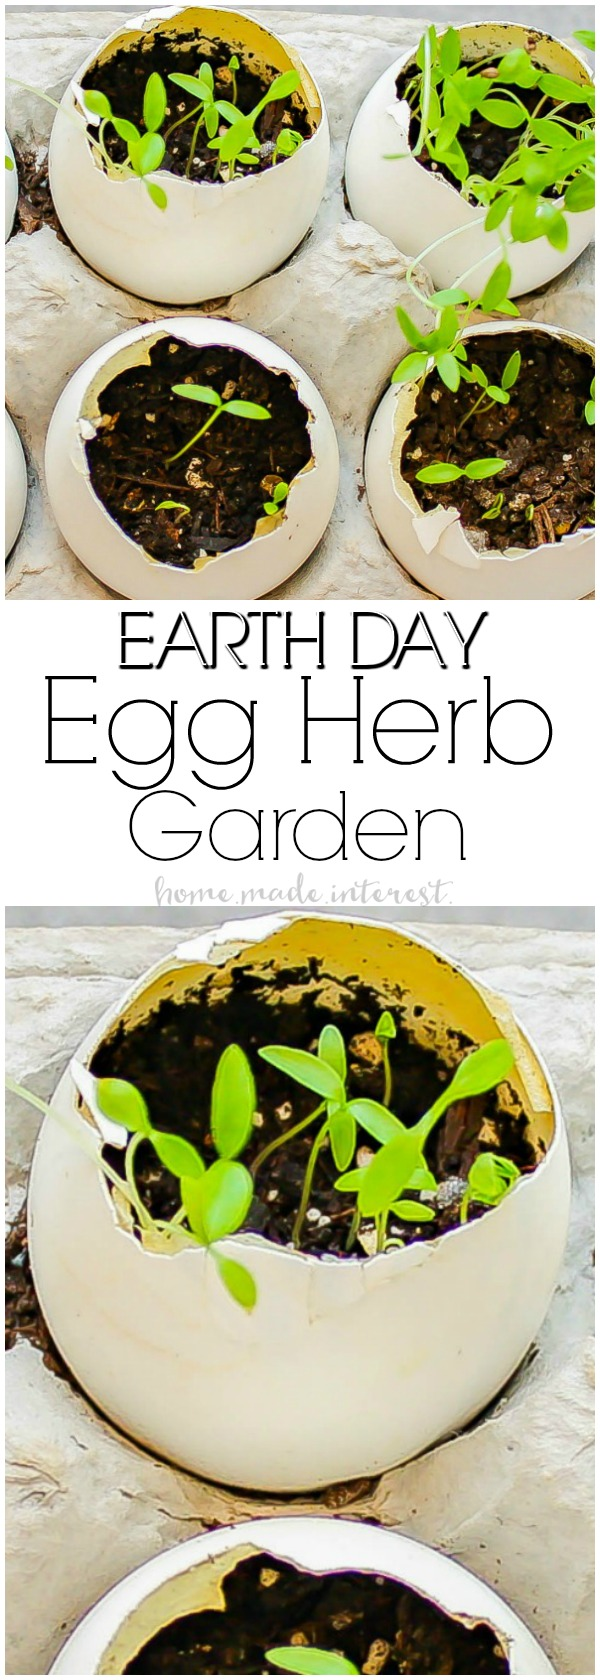 Eggshell Herb Garden | This simple Eggshell Herb Garden is a fun Earth Day Project to do with the kids! Teach your kids about sustainability and recycling using eggshells to make planters for herbs. Completely biodegradable and earth-friendly. A great kid activity for Earth Day!